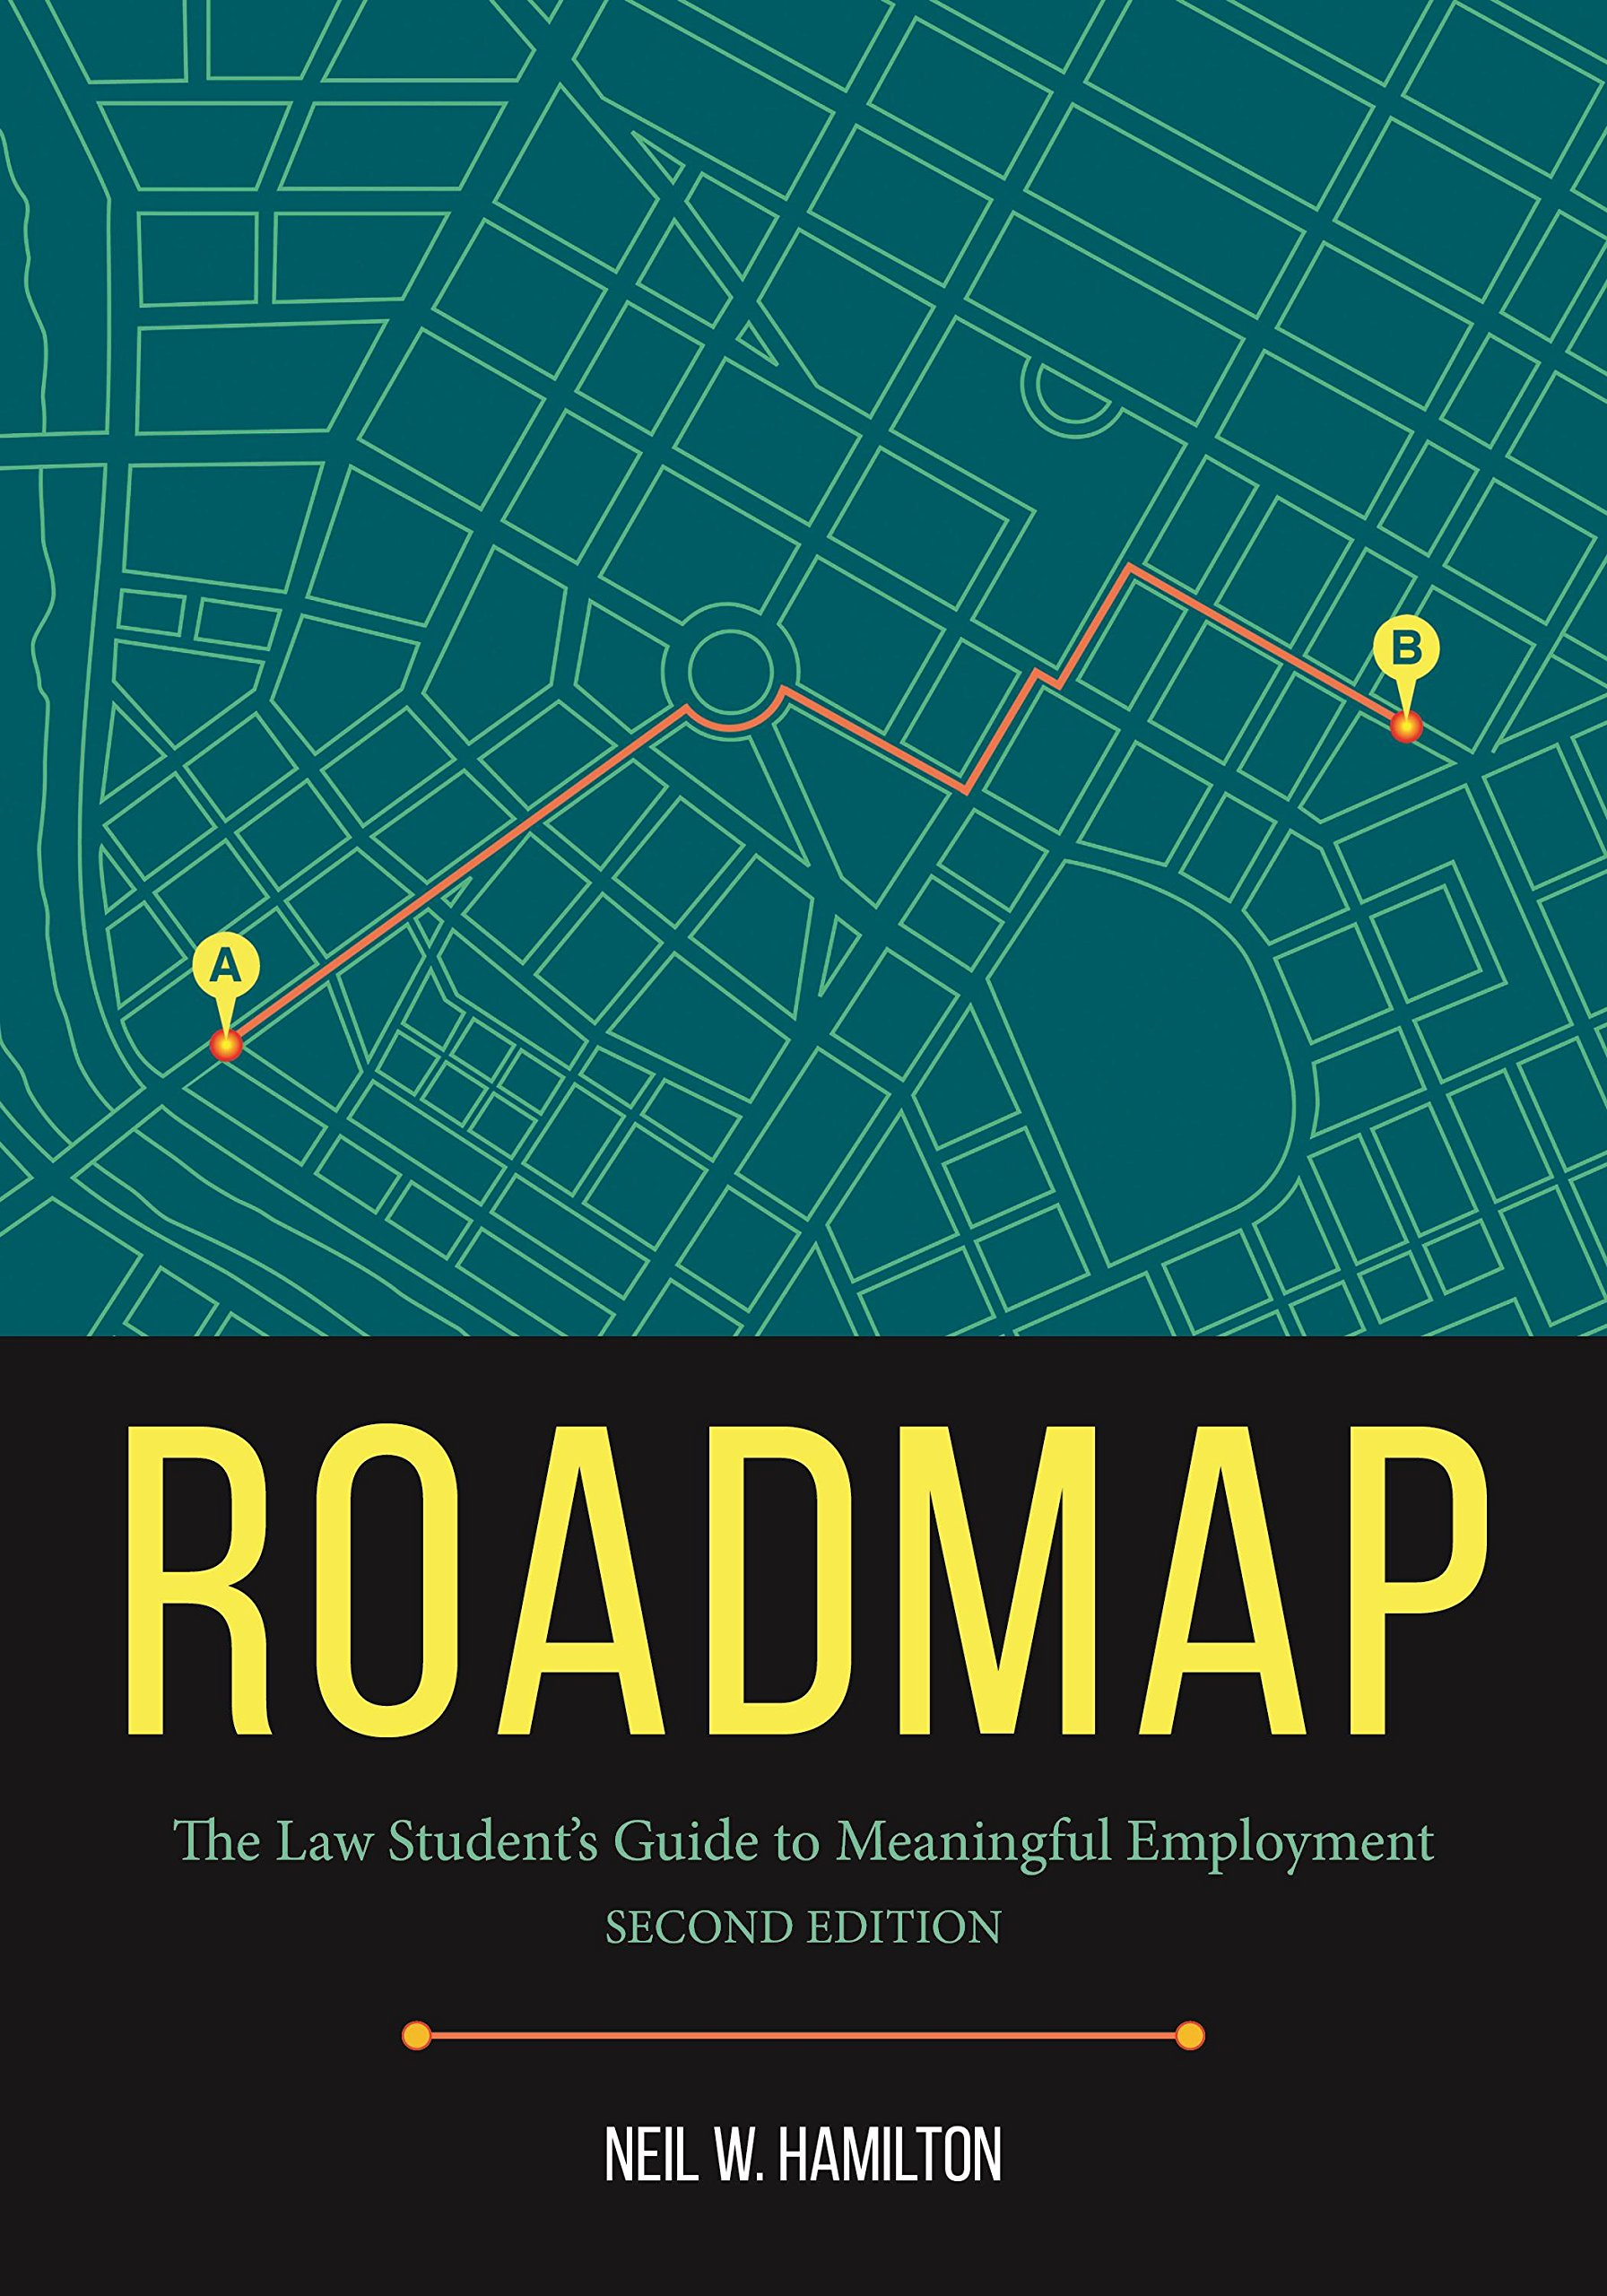 Roadmap: The Law Student's Guide to Meaningful Employment, Second Edition